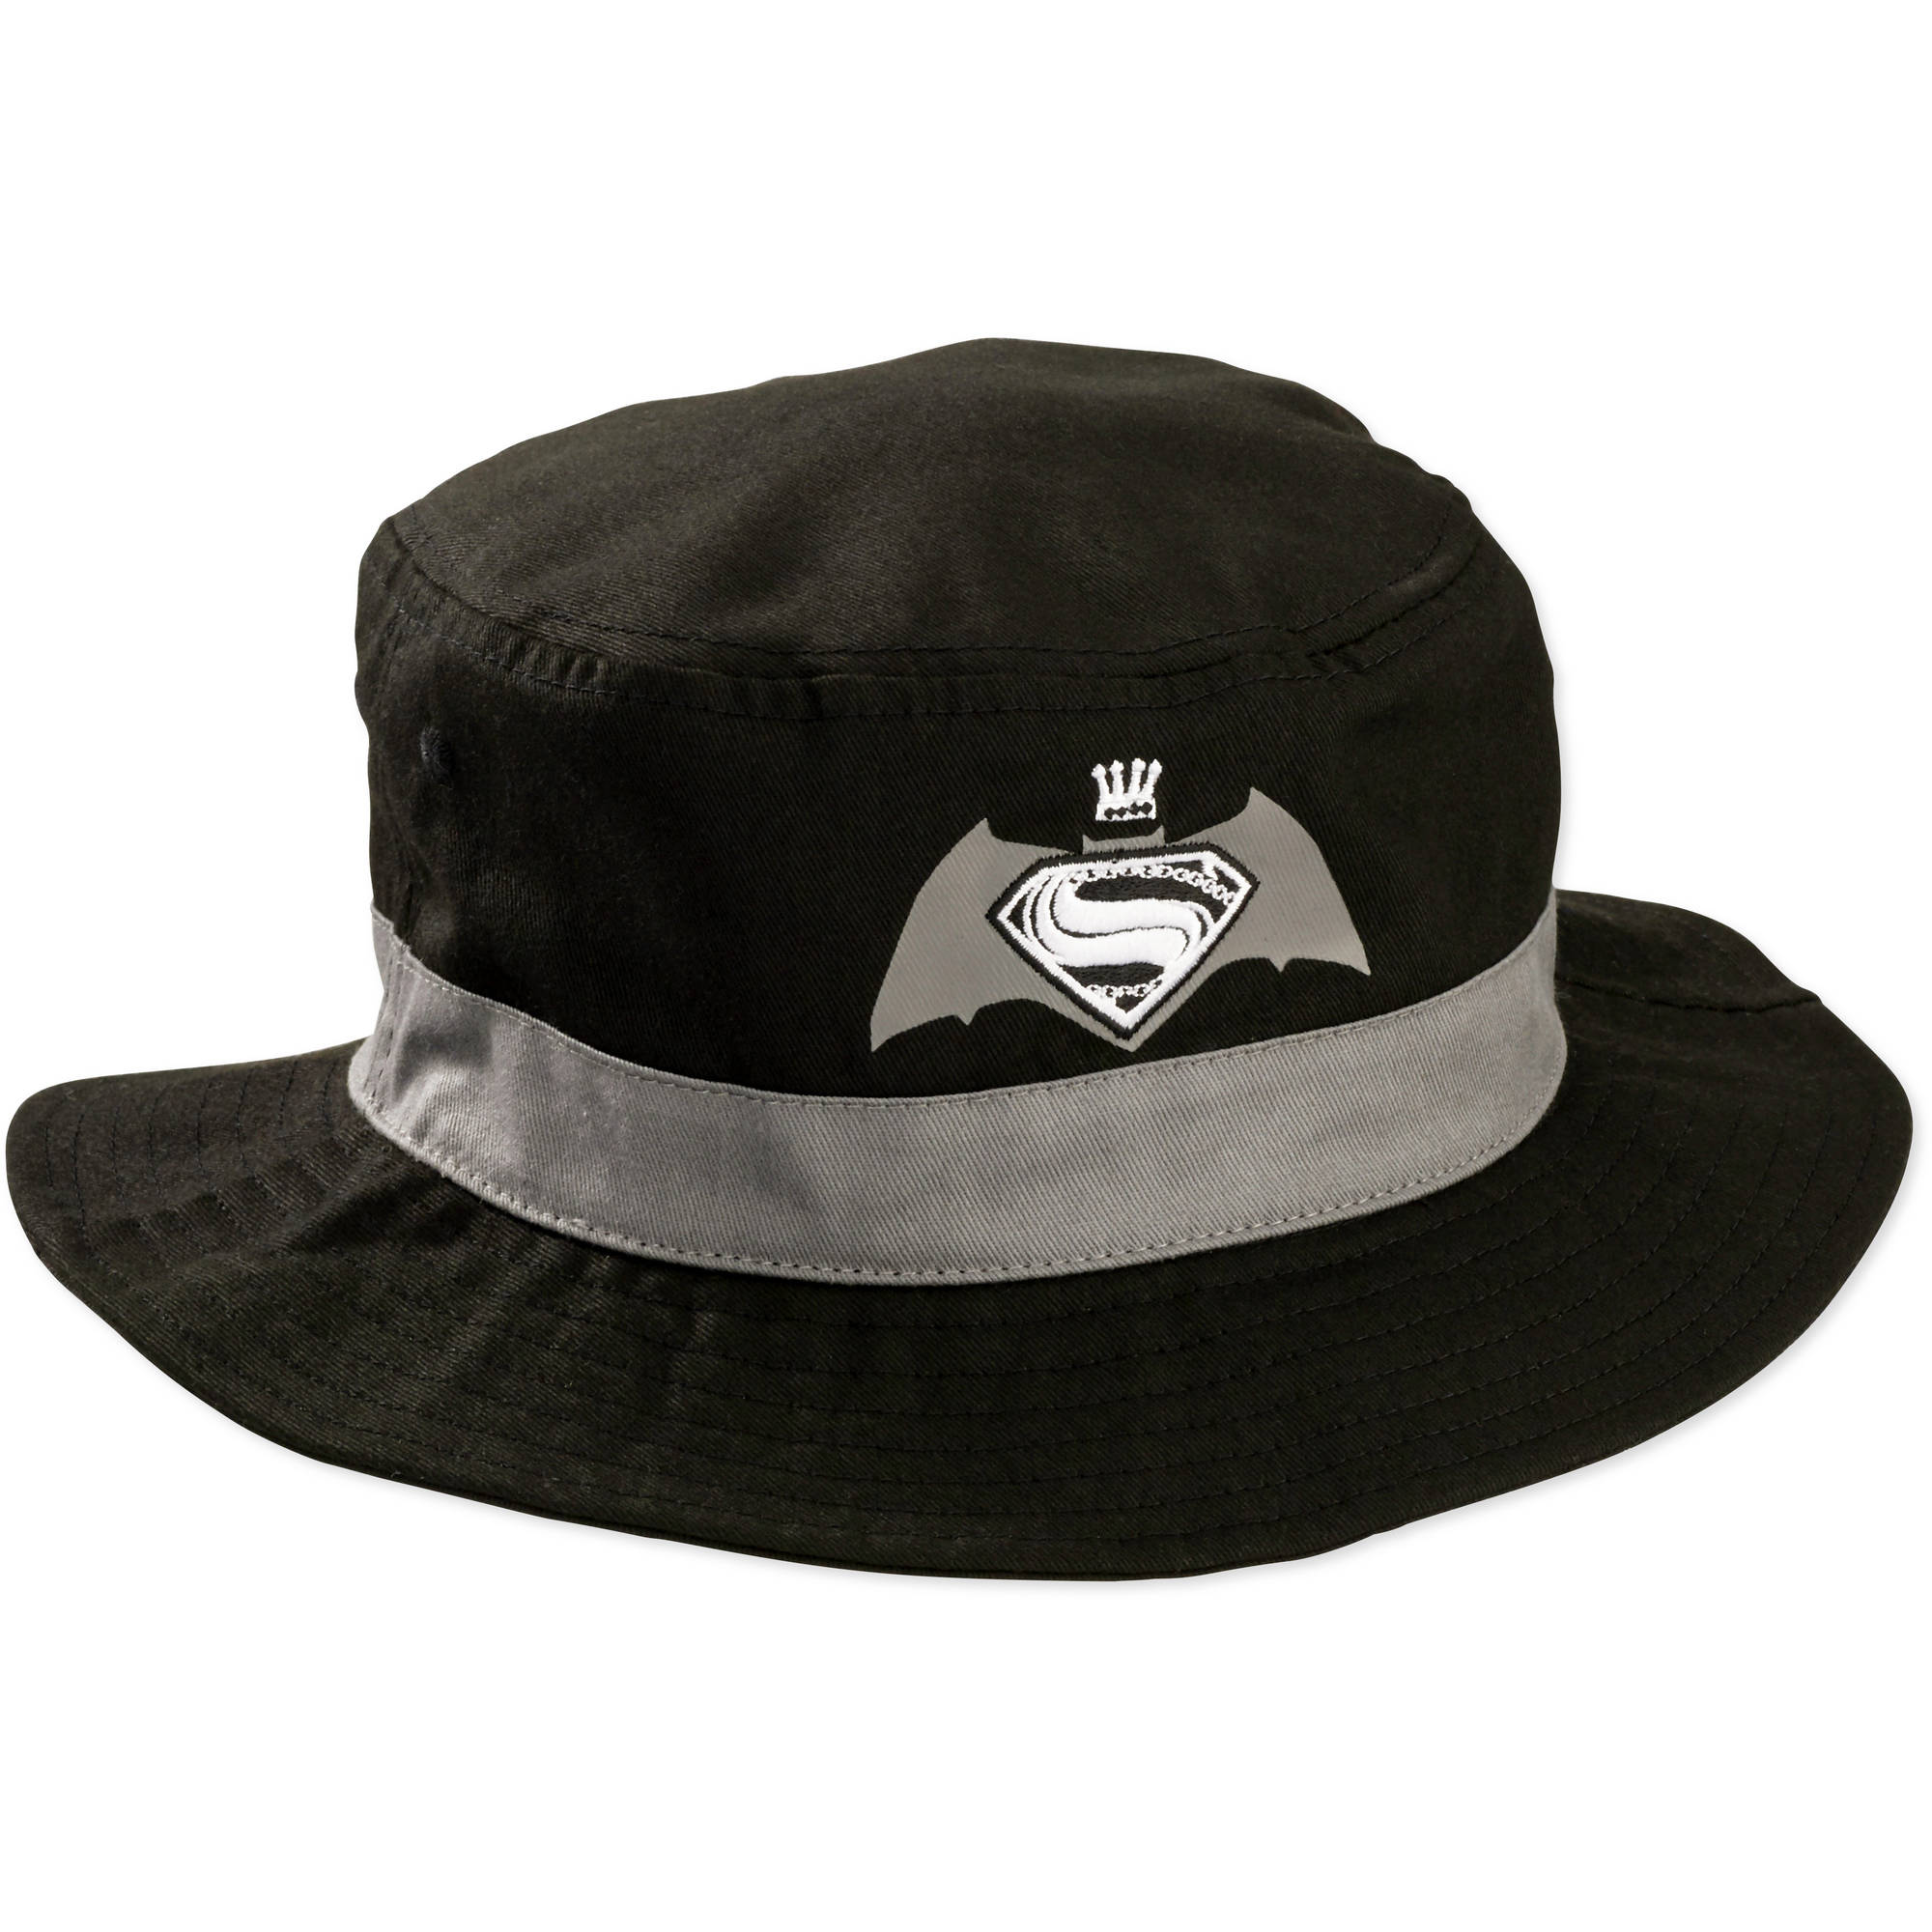 Men's Superman Bucket Hat